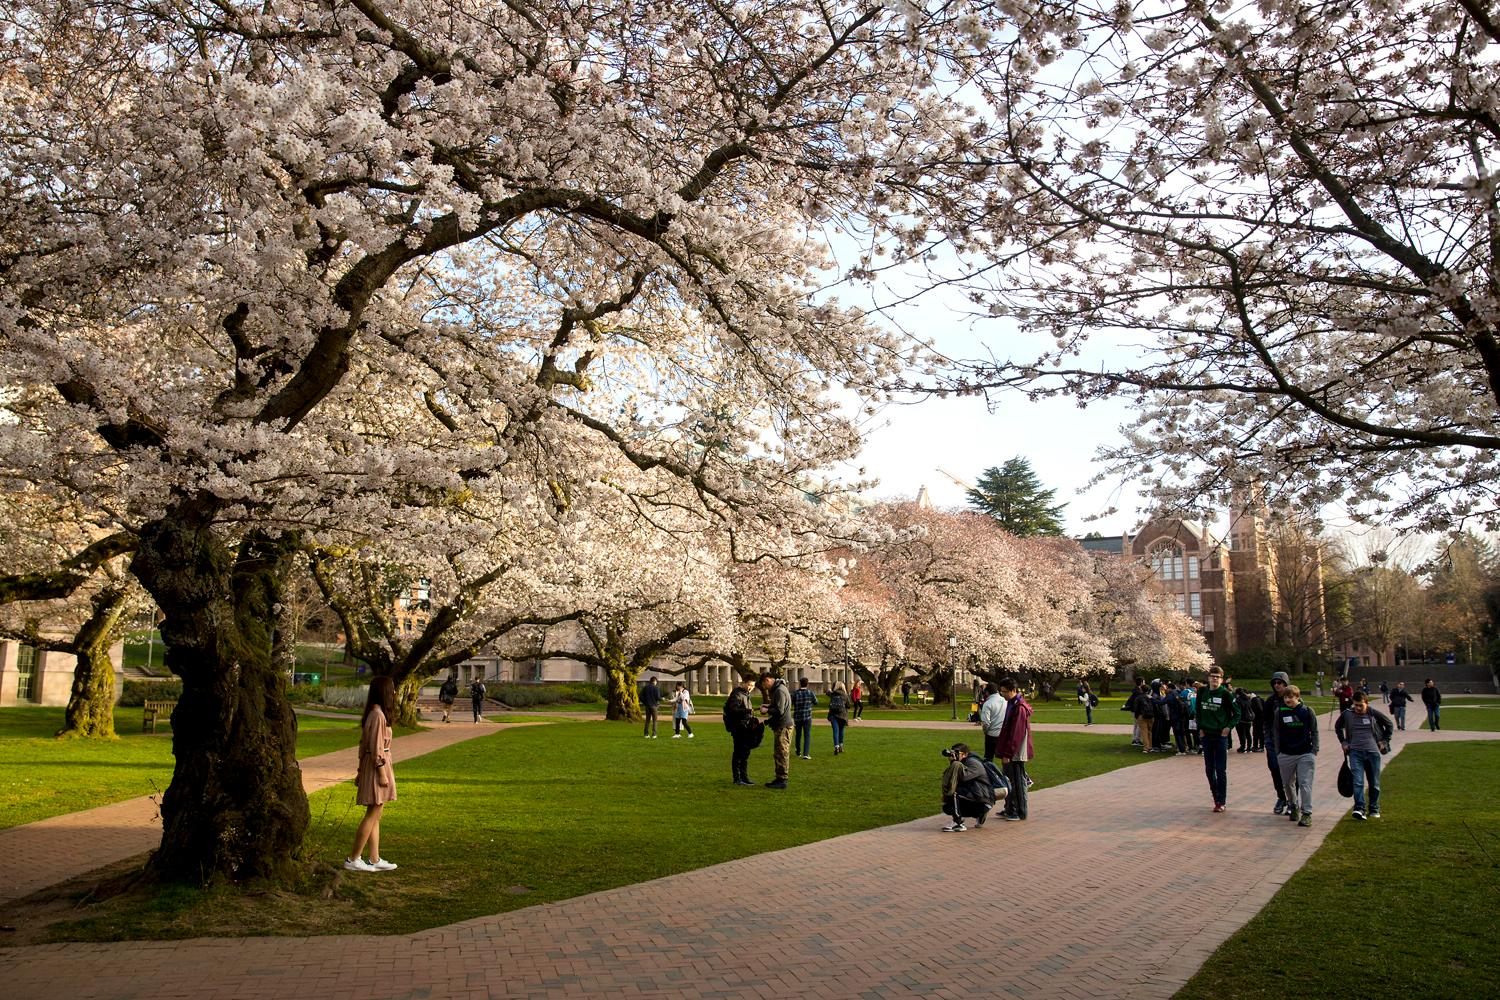 A few visitors walk along the 30 blooming Yoshino cherry trees on a quiet morning at the University of Washington, Monday March 19, 2018. The trees were originally purchased by the university in 1939 and planted in the Washington Park Arboretum, and then later transplanted in the Quad in 1962. The trees will be hitting peak bloom this week - so make sure to check them out! (Sy Bean / Seattle Refined)